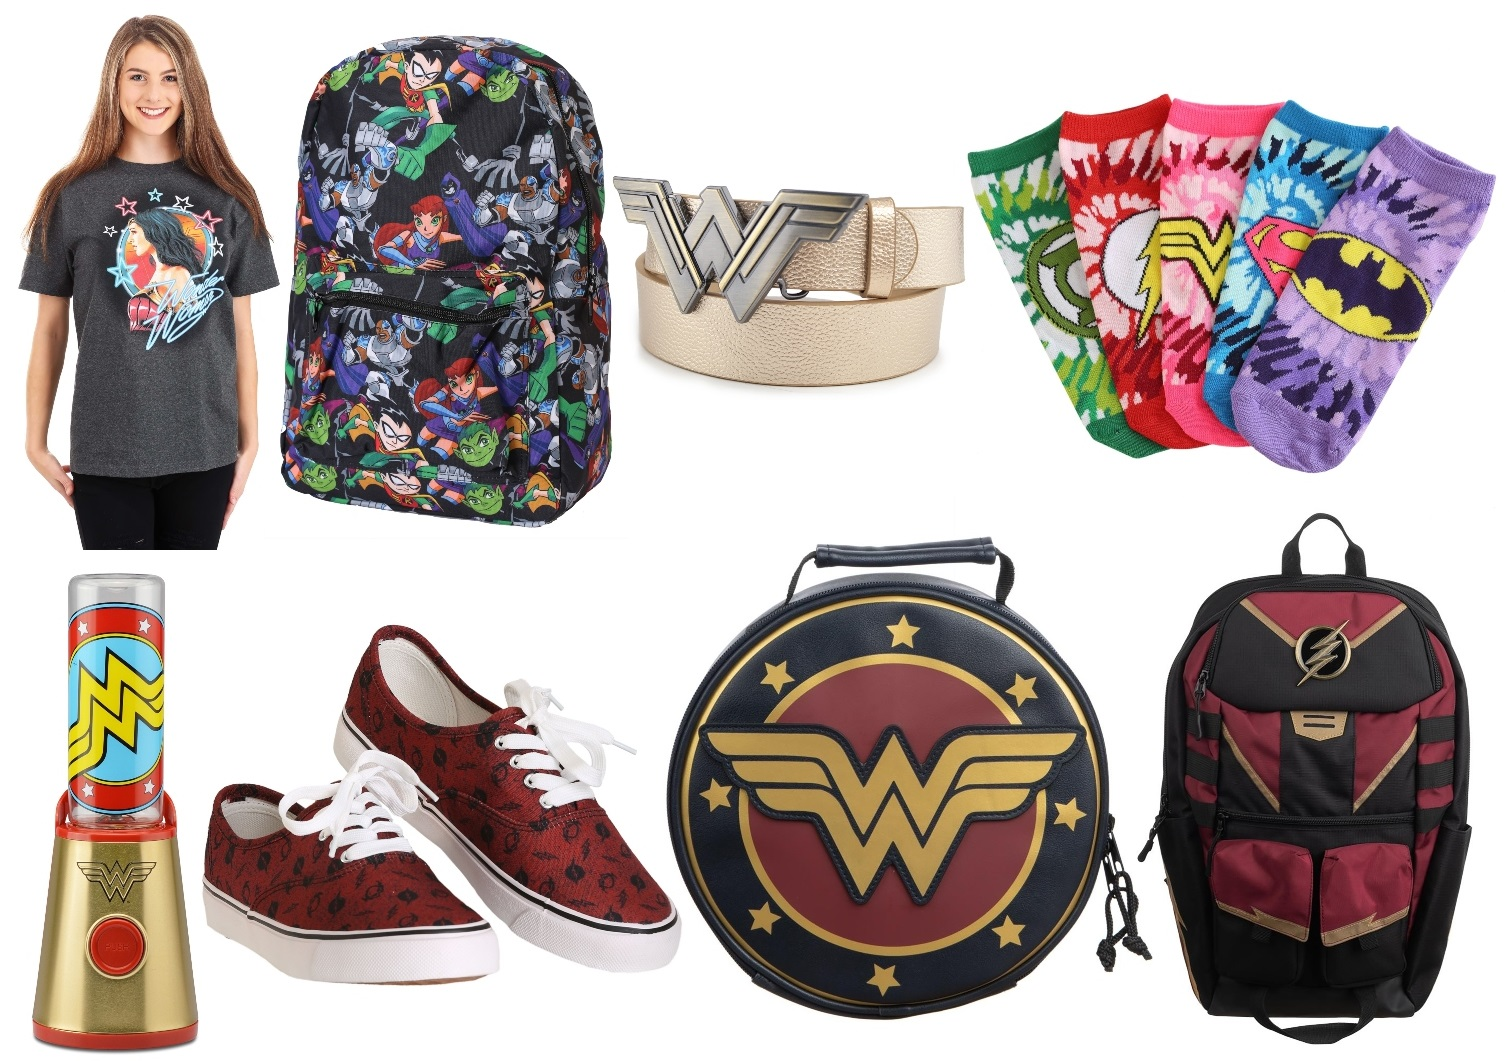 DC Gifts for School